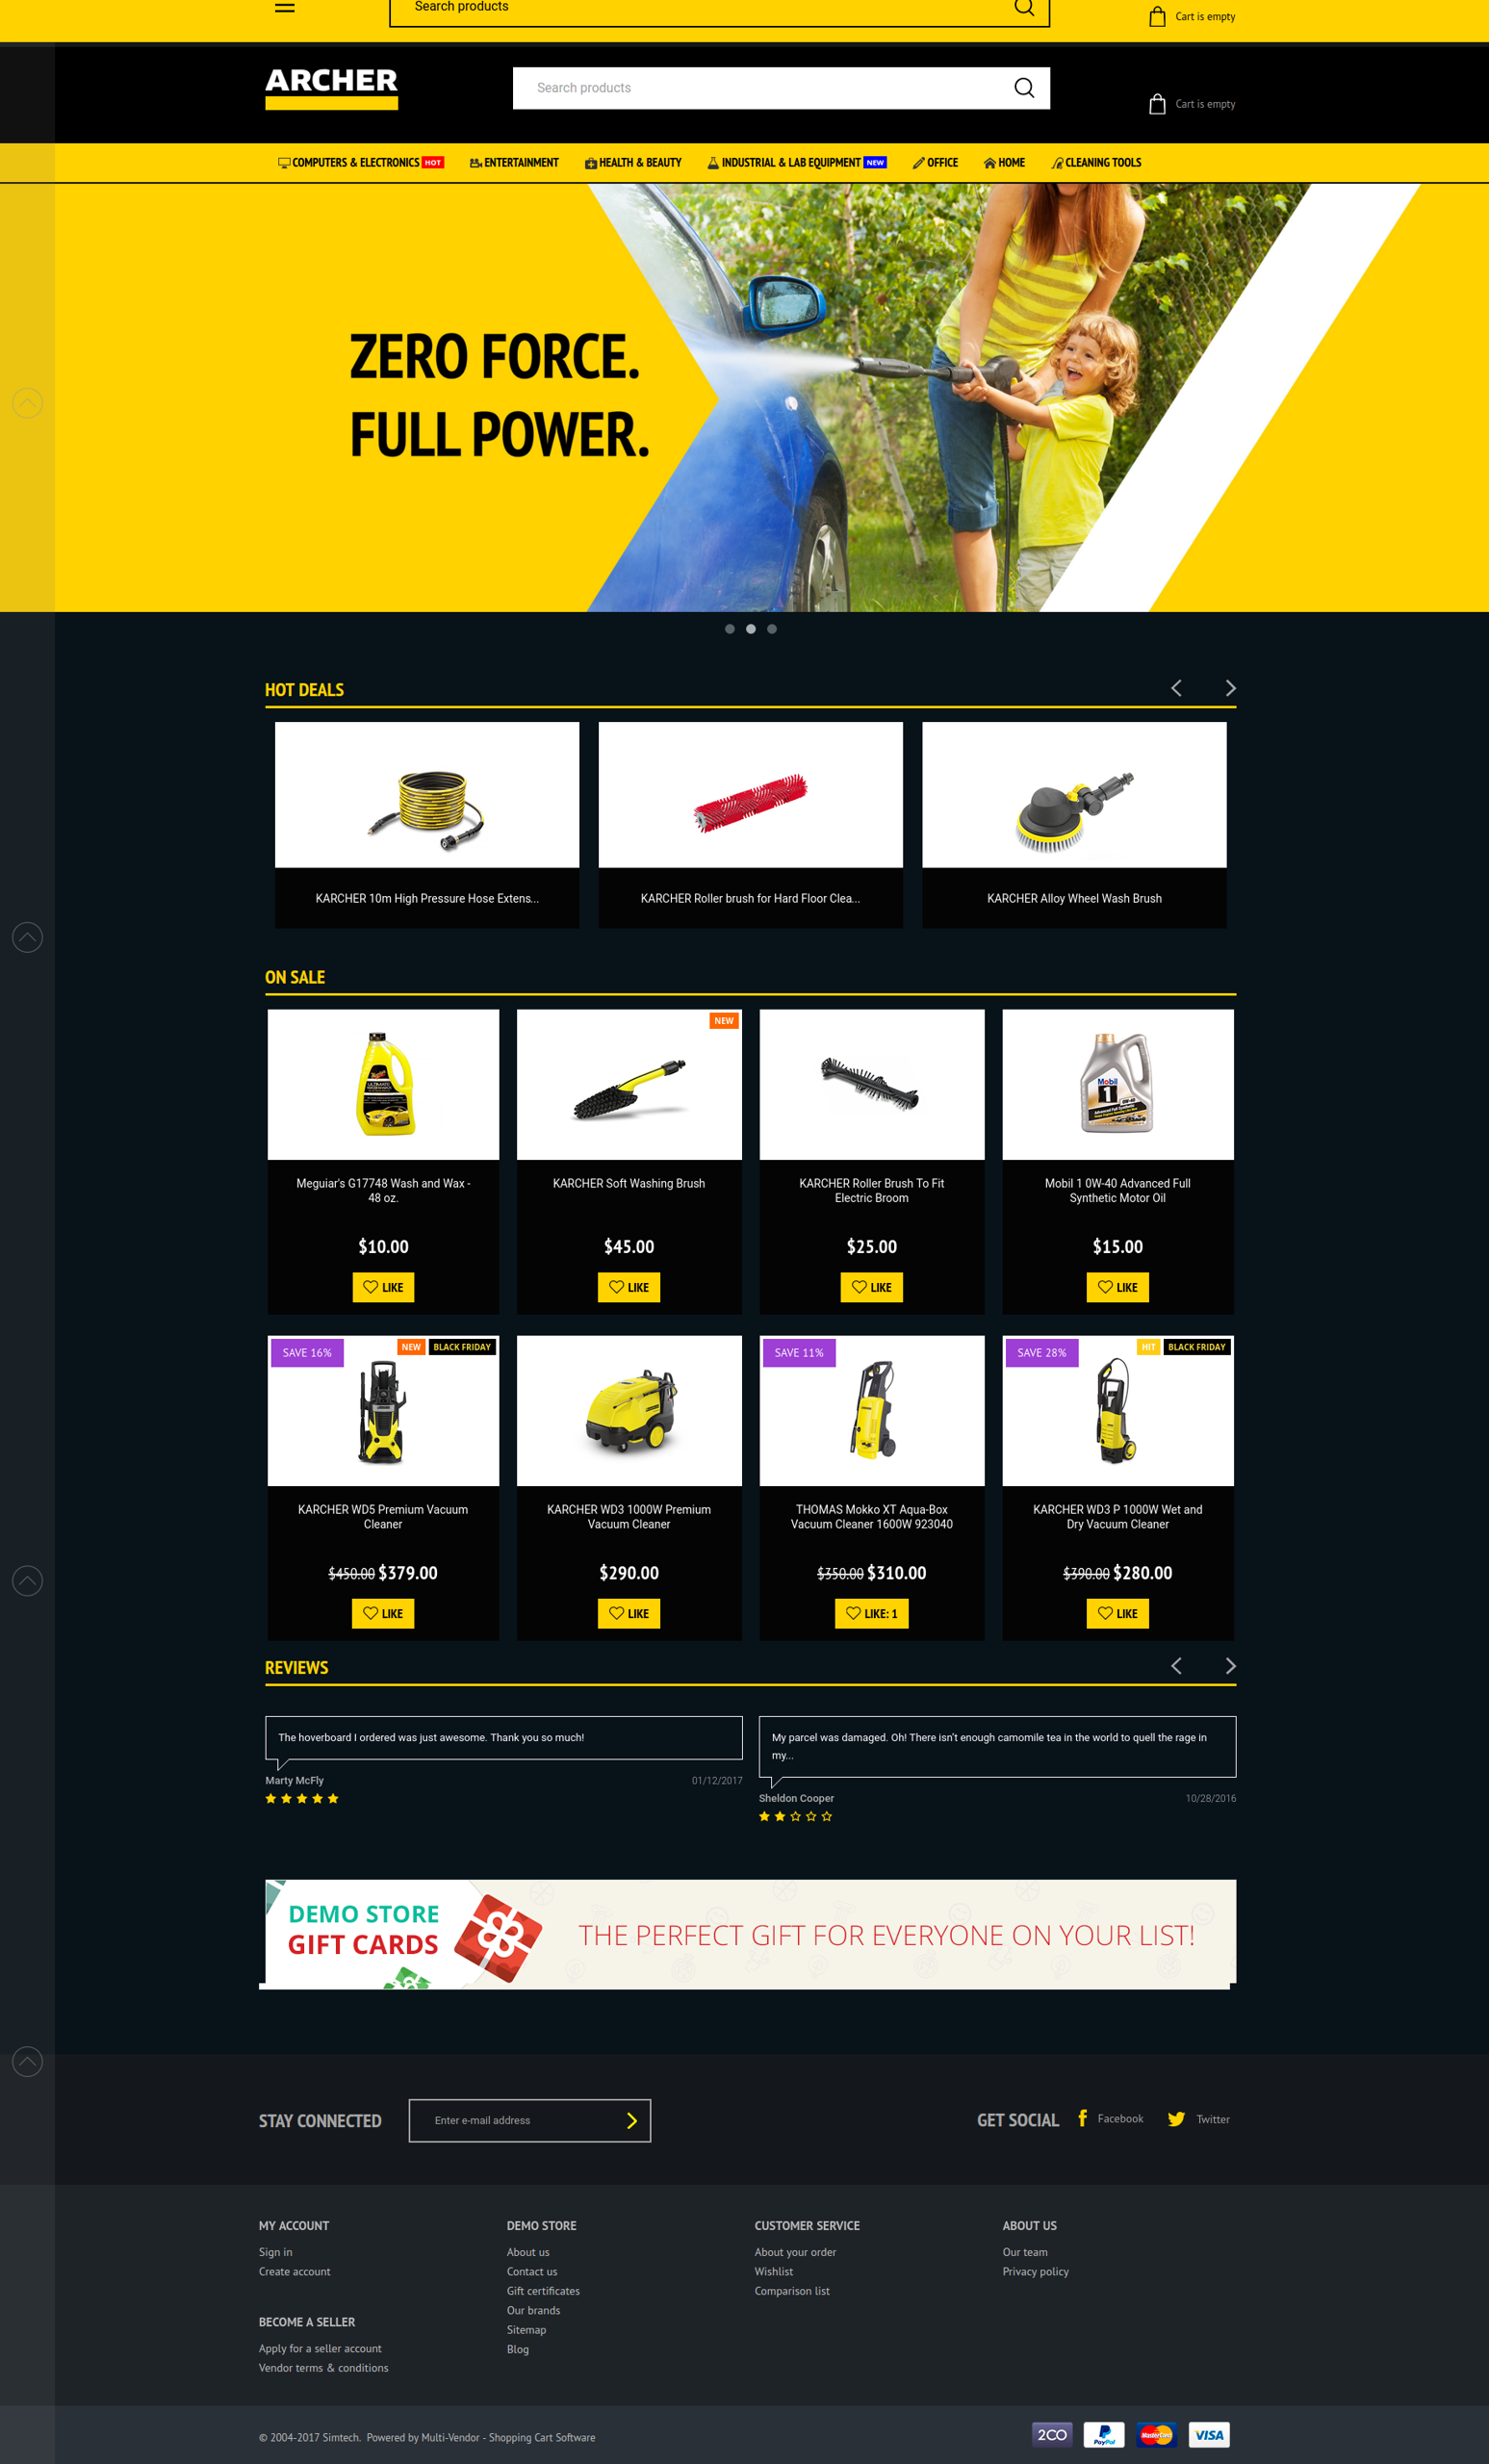 archer-theme-homepage.png?1515741623091